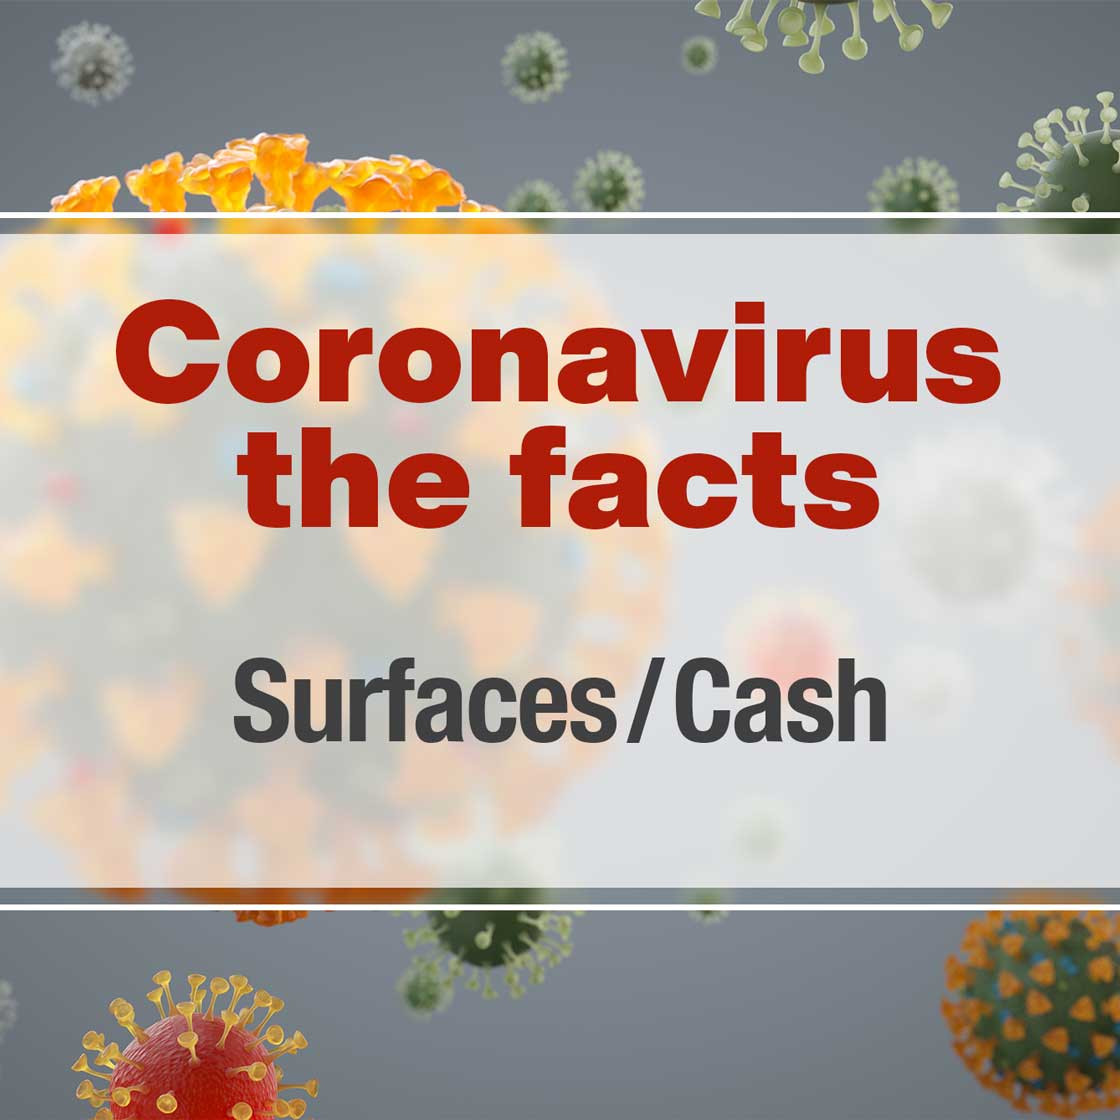 How long can the virus survive on surfaces?